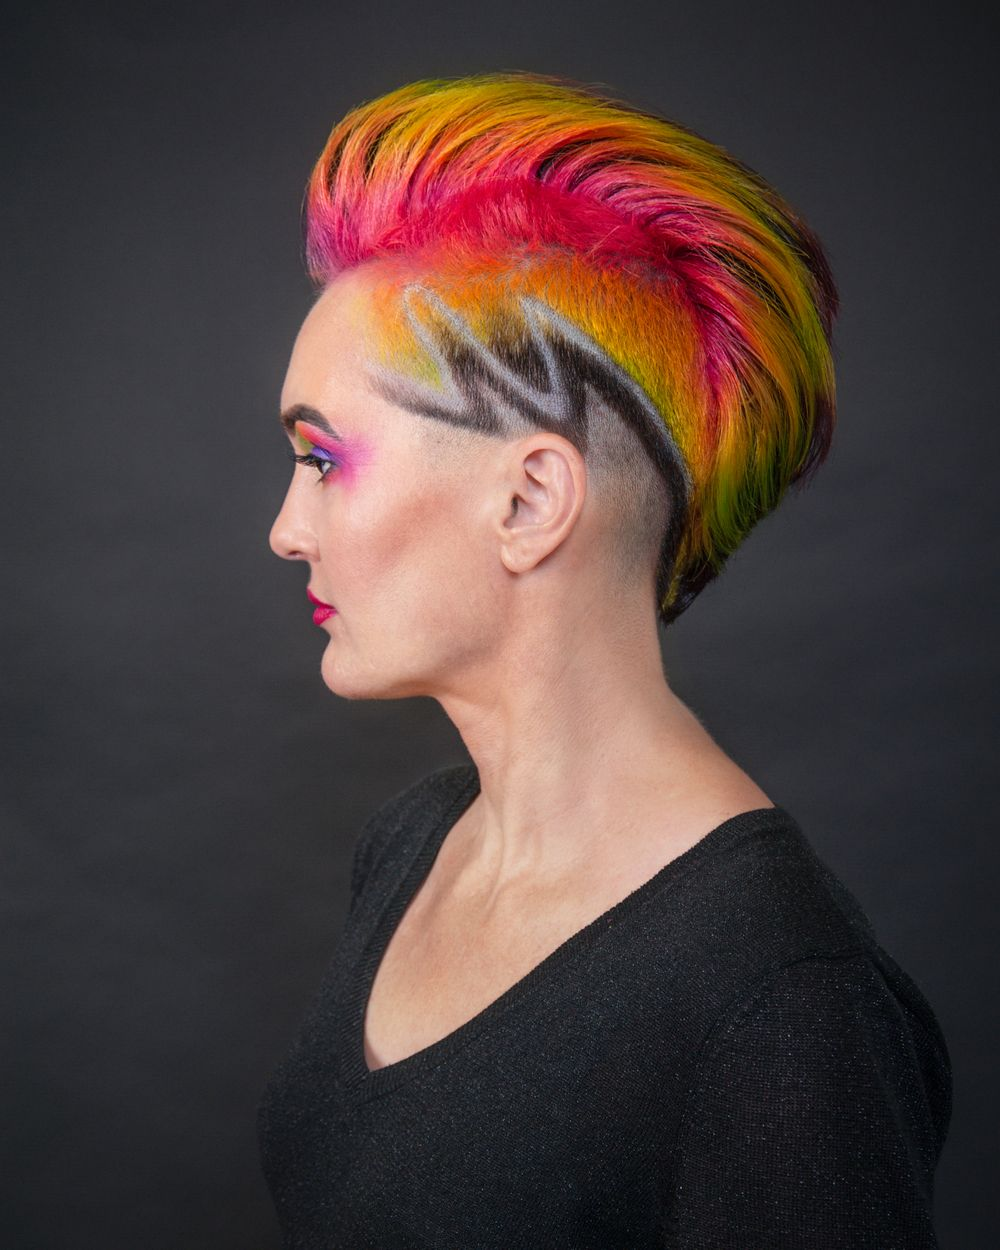 Colorful Mowhawk with zigzag razor cut